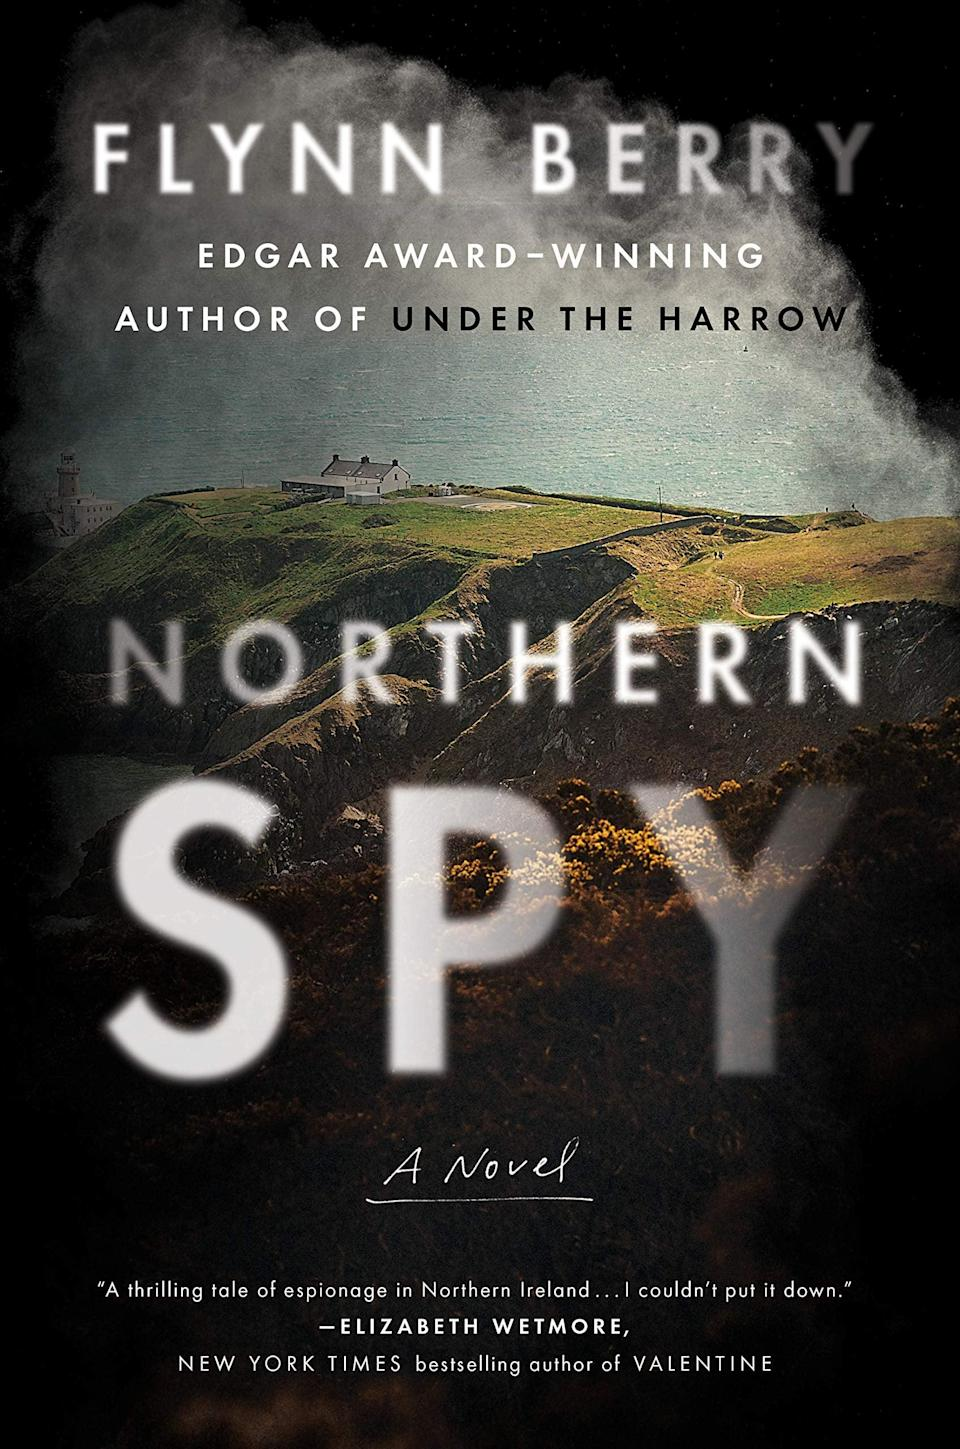 "<p>The IRA comes between two sisters in Flynn Berry's intense and moving <a href=""https://www.amazon.com/Northern-Spy-Novel-Flynn-Berry/dp/0735224994"" class=""link rapid-noclick-resp"" rel=""nofollow noopener"" target=""_blank"" data-ylk=""slk:Northern Spy""><strong>Northern Spy</strong></a>. Tessa and Marian have always opposed the violence of the IRA, but when Tessa sees her sister on television helping the group during a robbery, she'll begin to wonder if she knows her sister as well as she thought. </p> <p><em>Out April 6</em></p>"